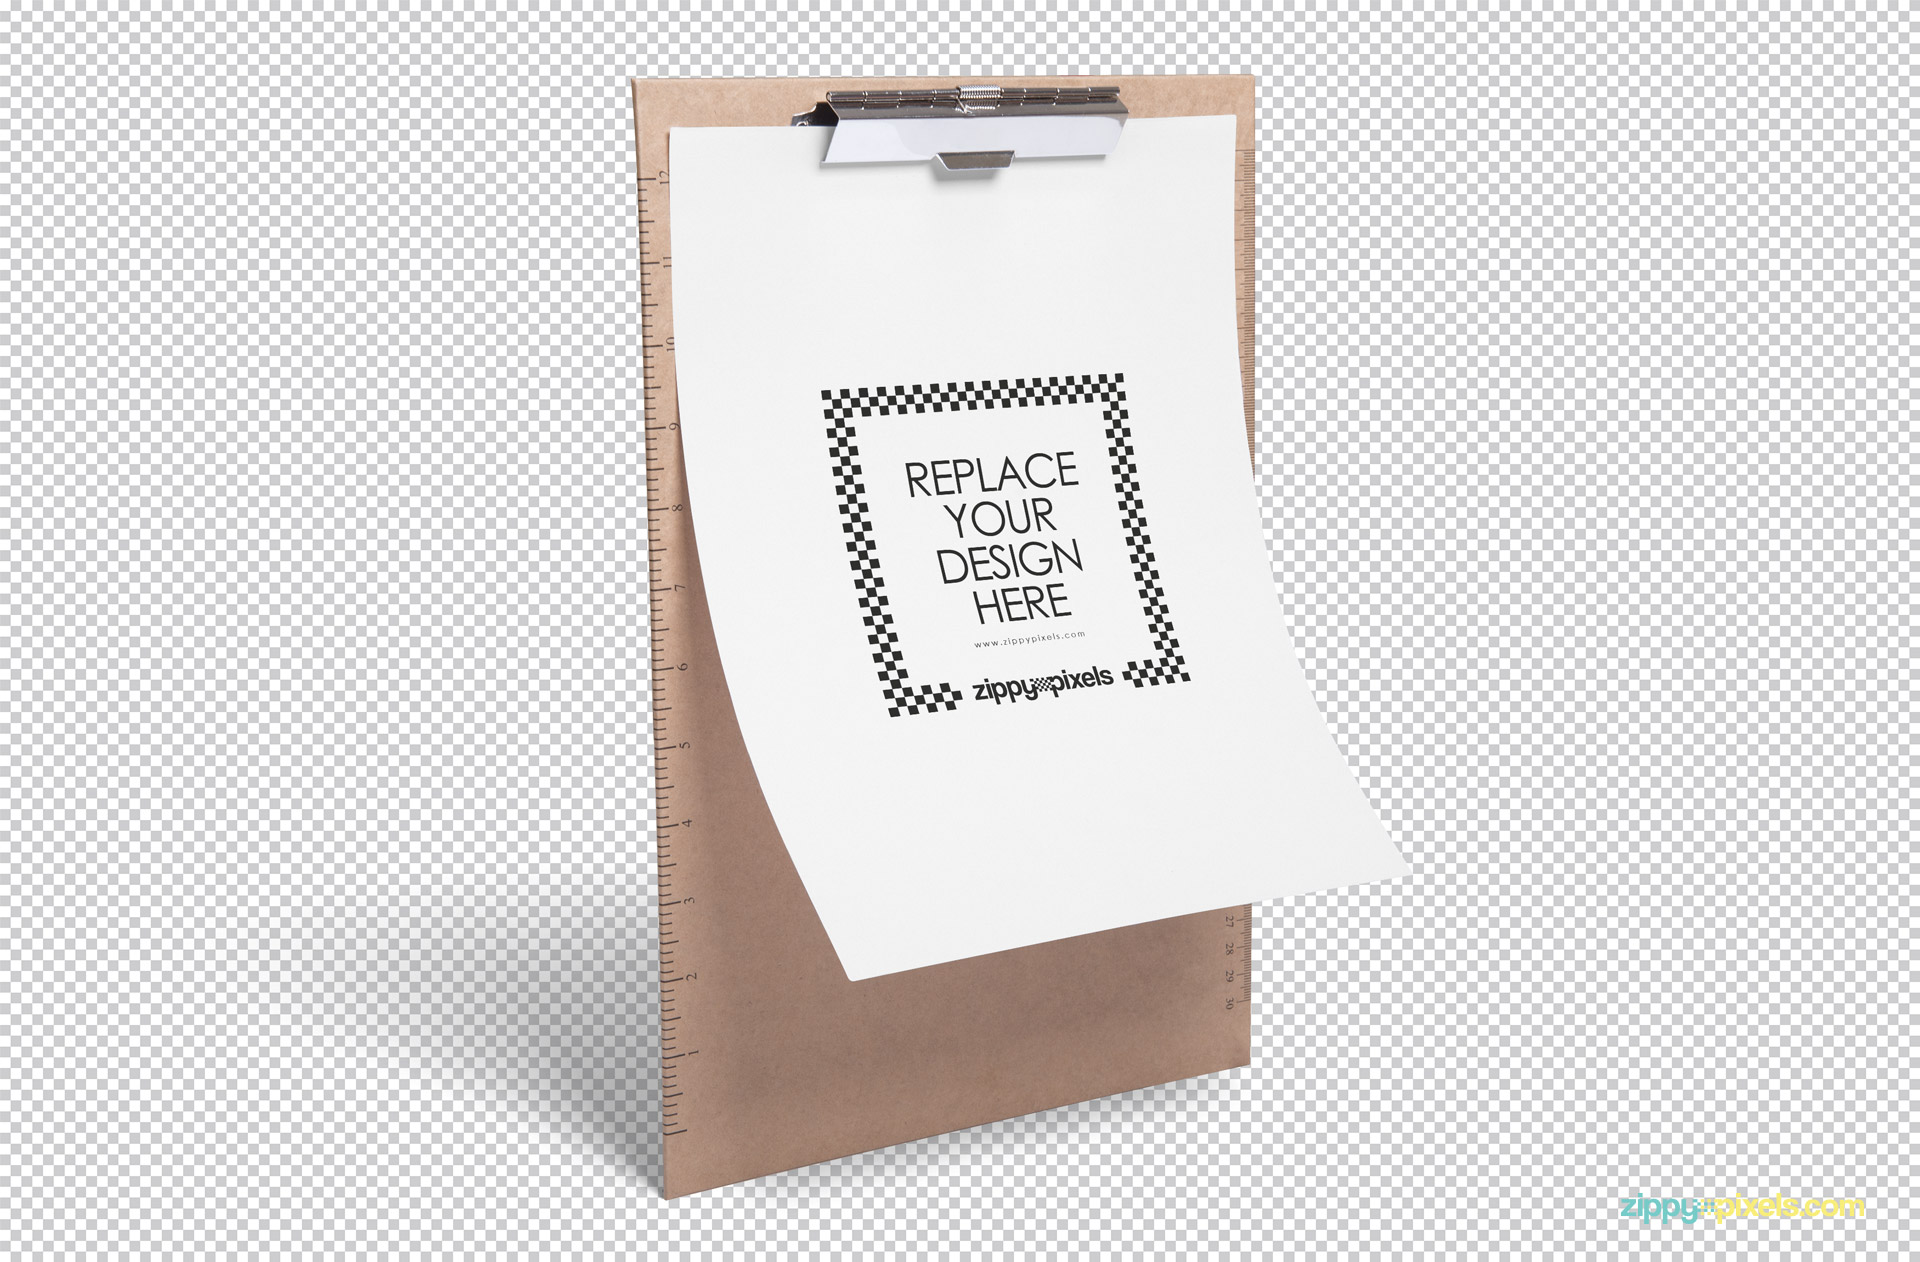 Fully customizable paper mockup with a clipboard.